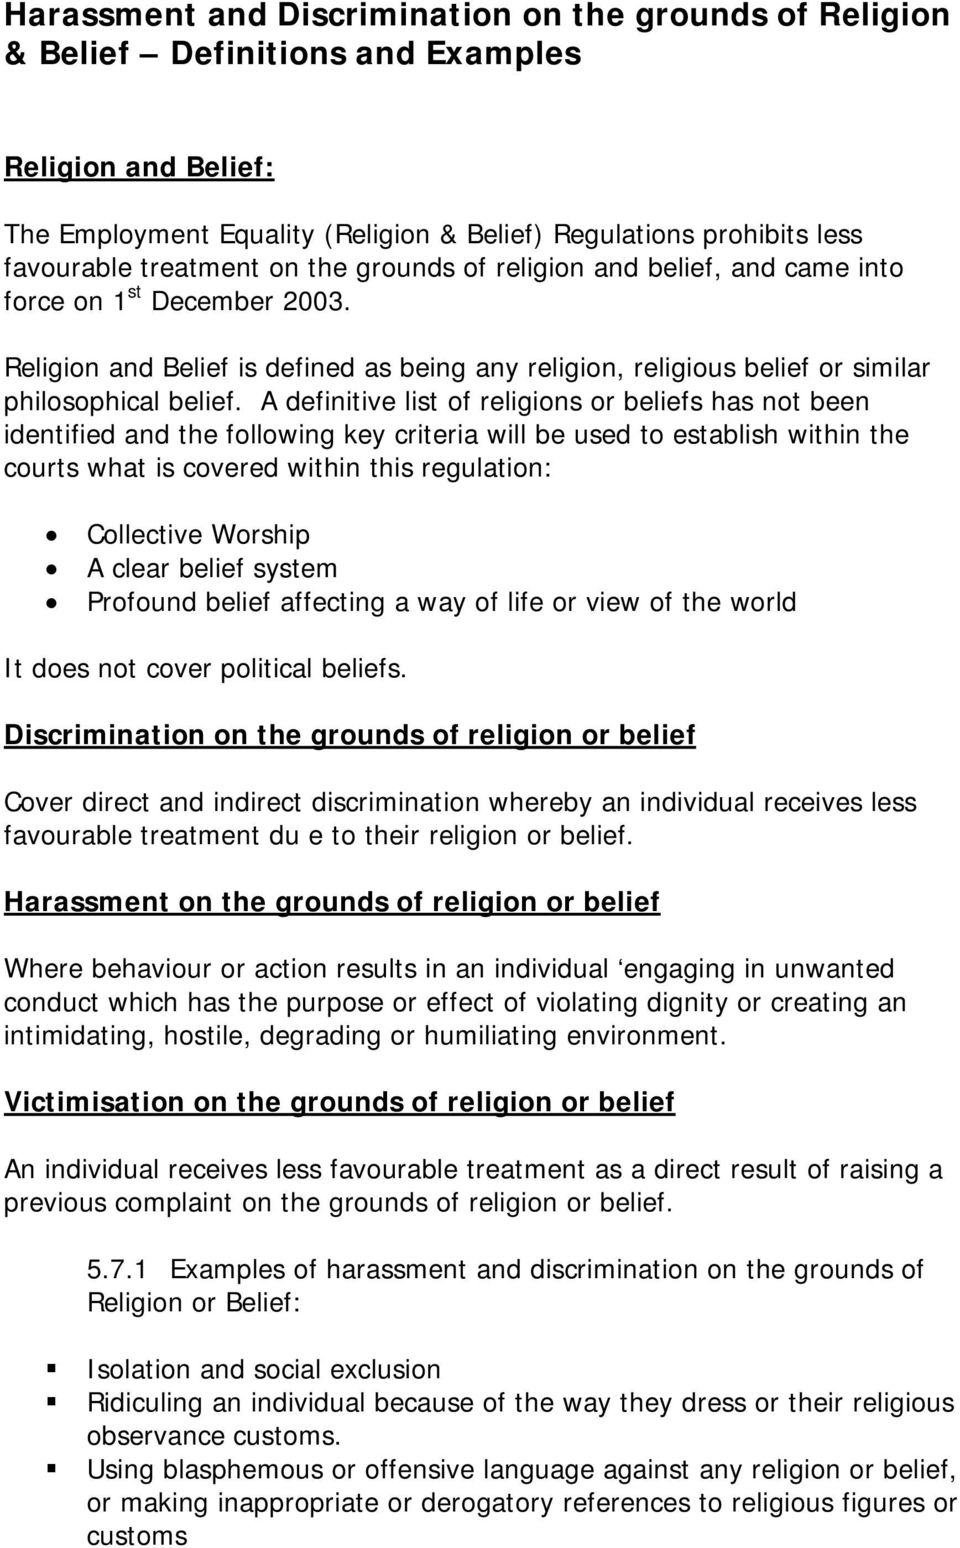 A definitive list of religions or beliefs has not been identified and the following key criteria will be used to establish within the courts what is covered within this regulation: Collective Worship